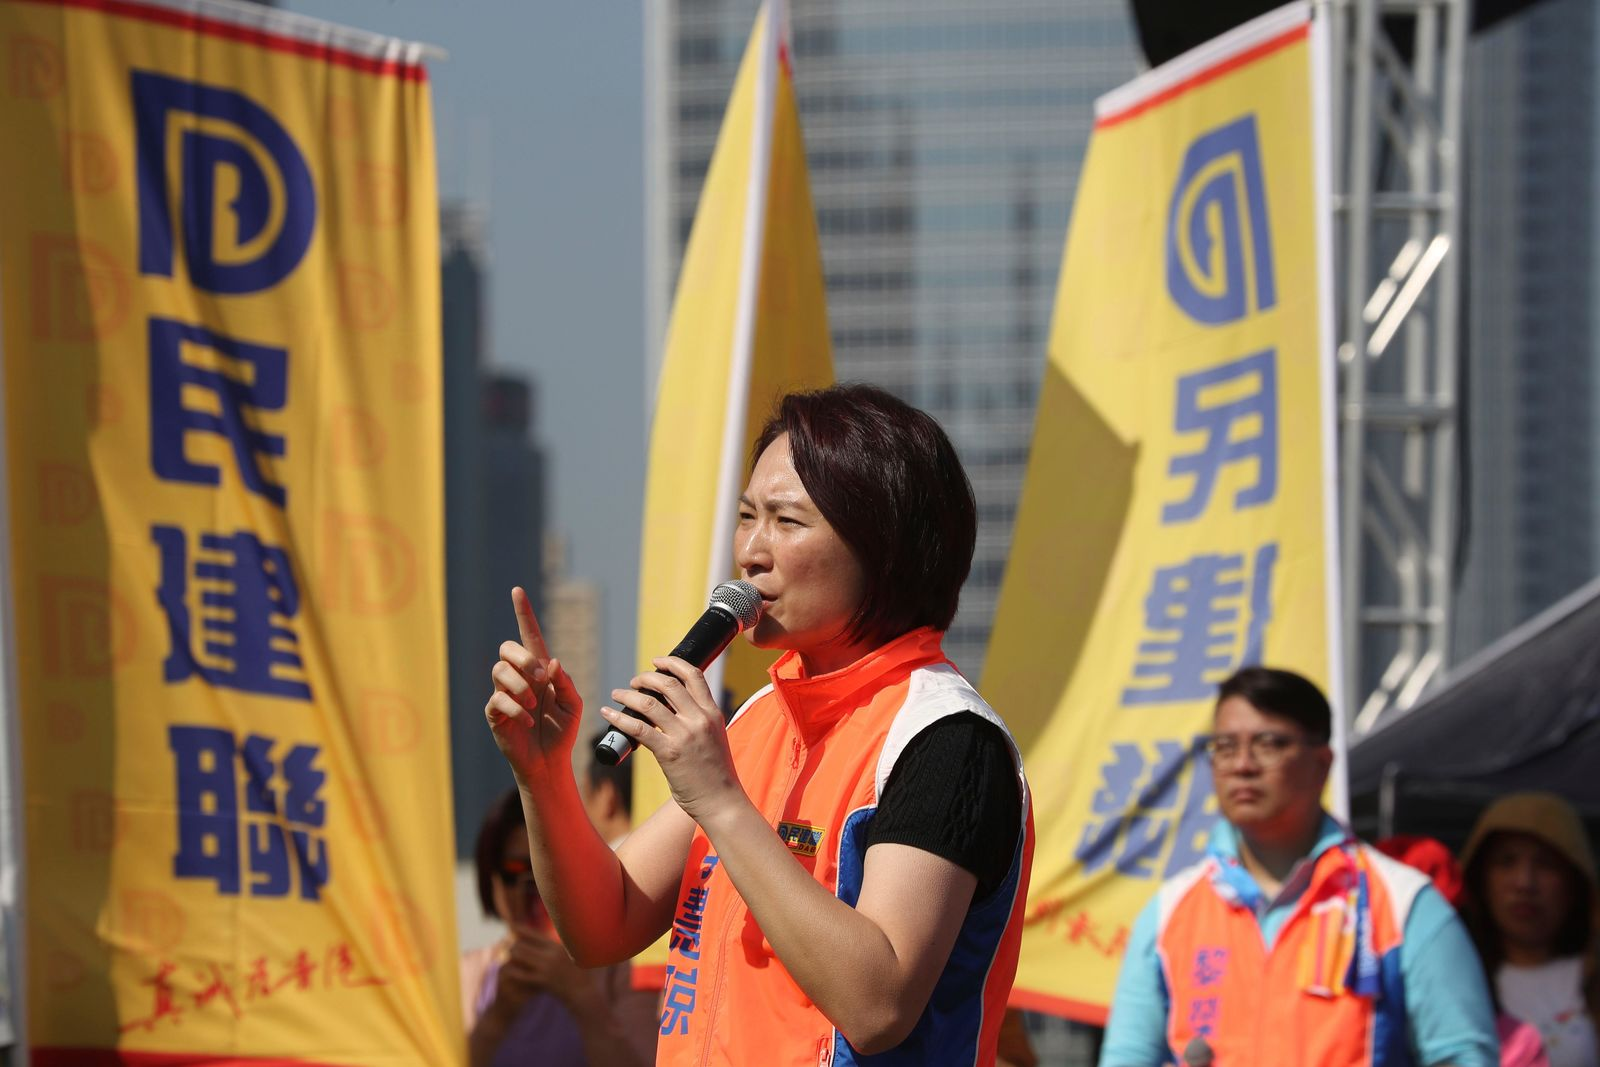 Starry Lee, head of the Democratic Alliance for the Betterment and Progress of Hong Kong, speaks during an event for the party's candidates in the upcoming district elections held in Hong Kong on Thursday, Nov. 21, 2019.{ } (AP Photo/Ng Han Guan)